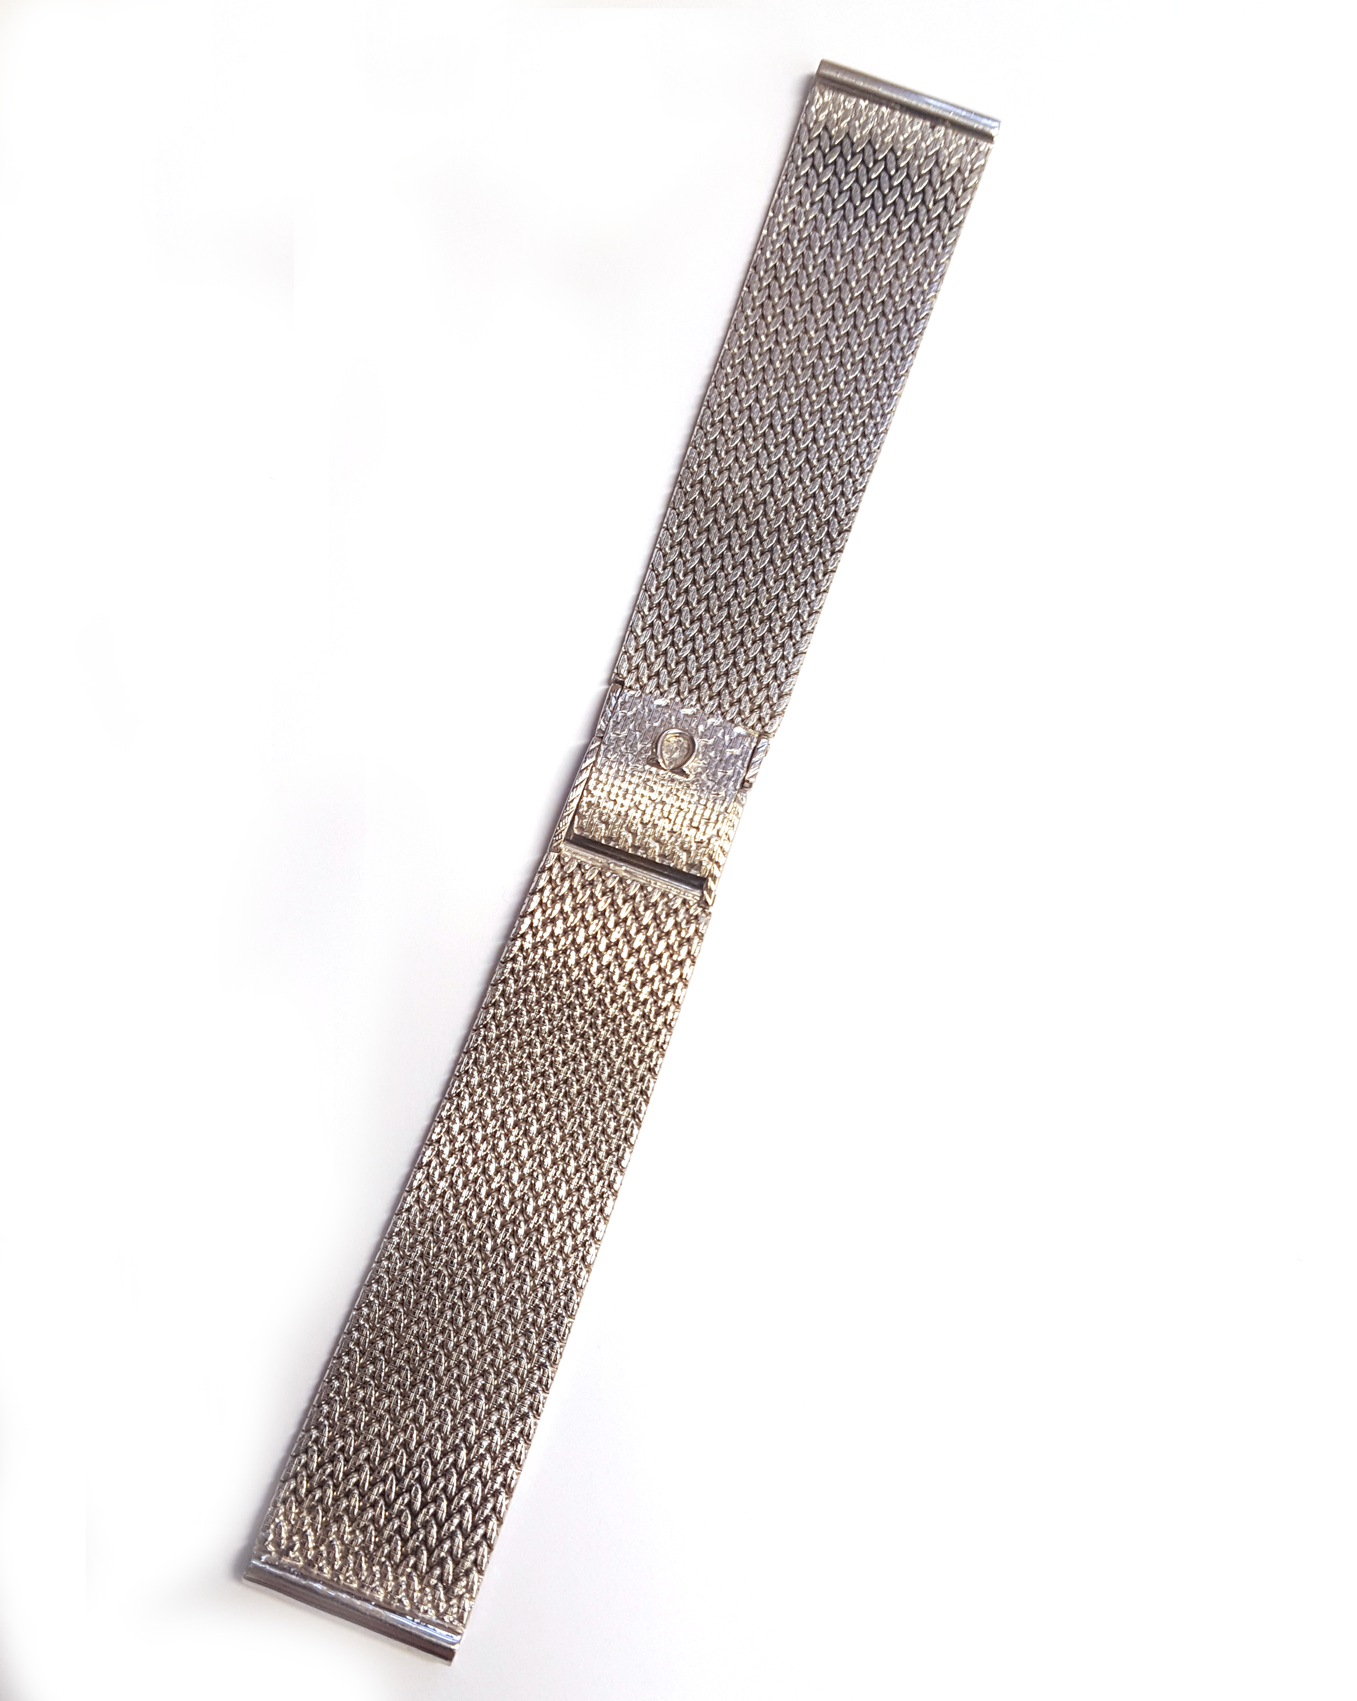 18ct White Gold Omega Watch Bracelet